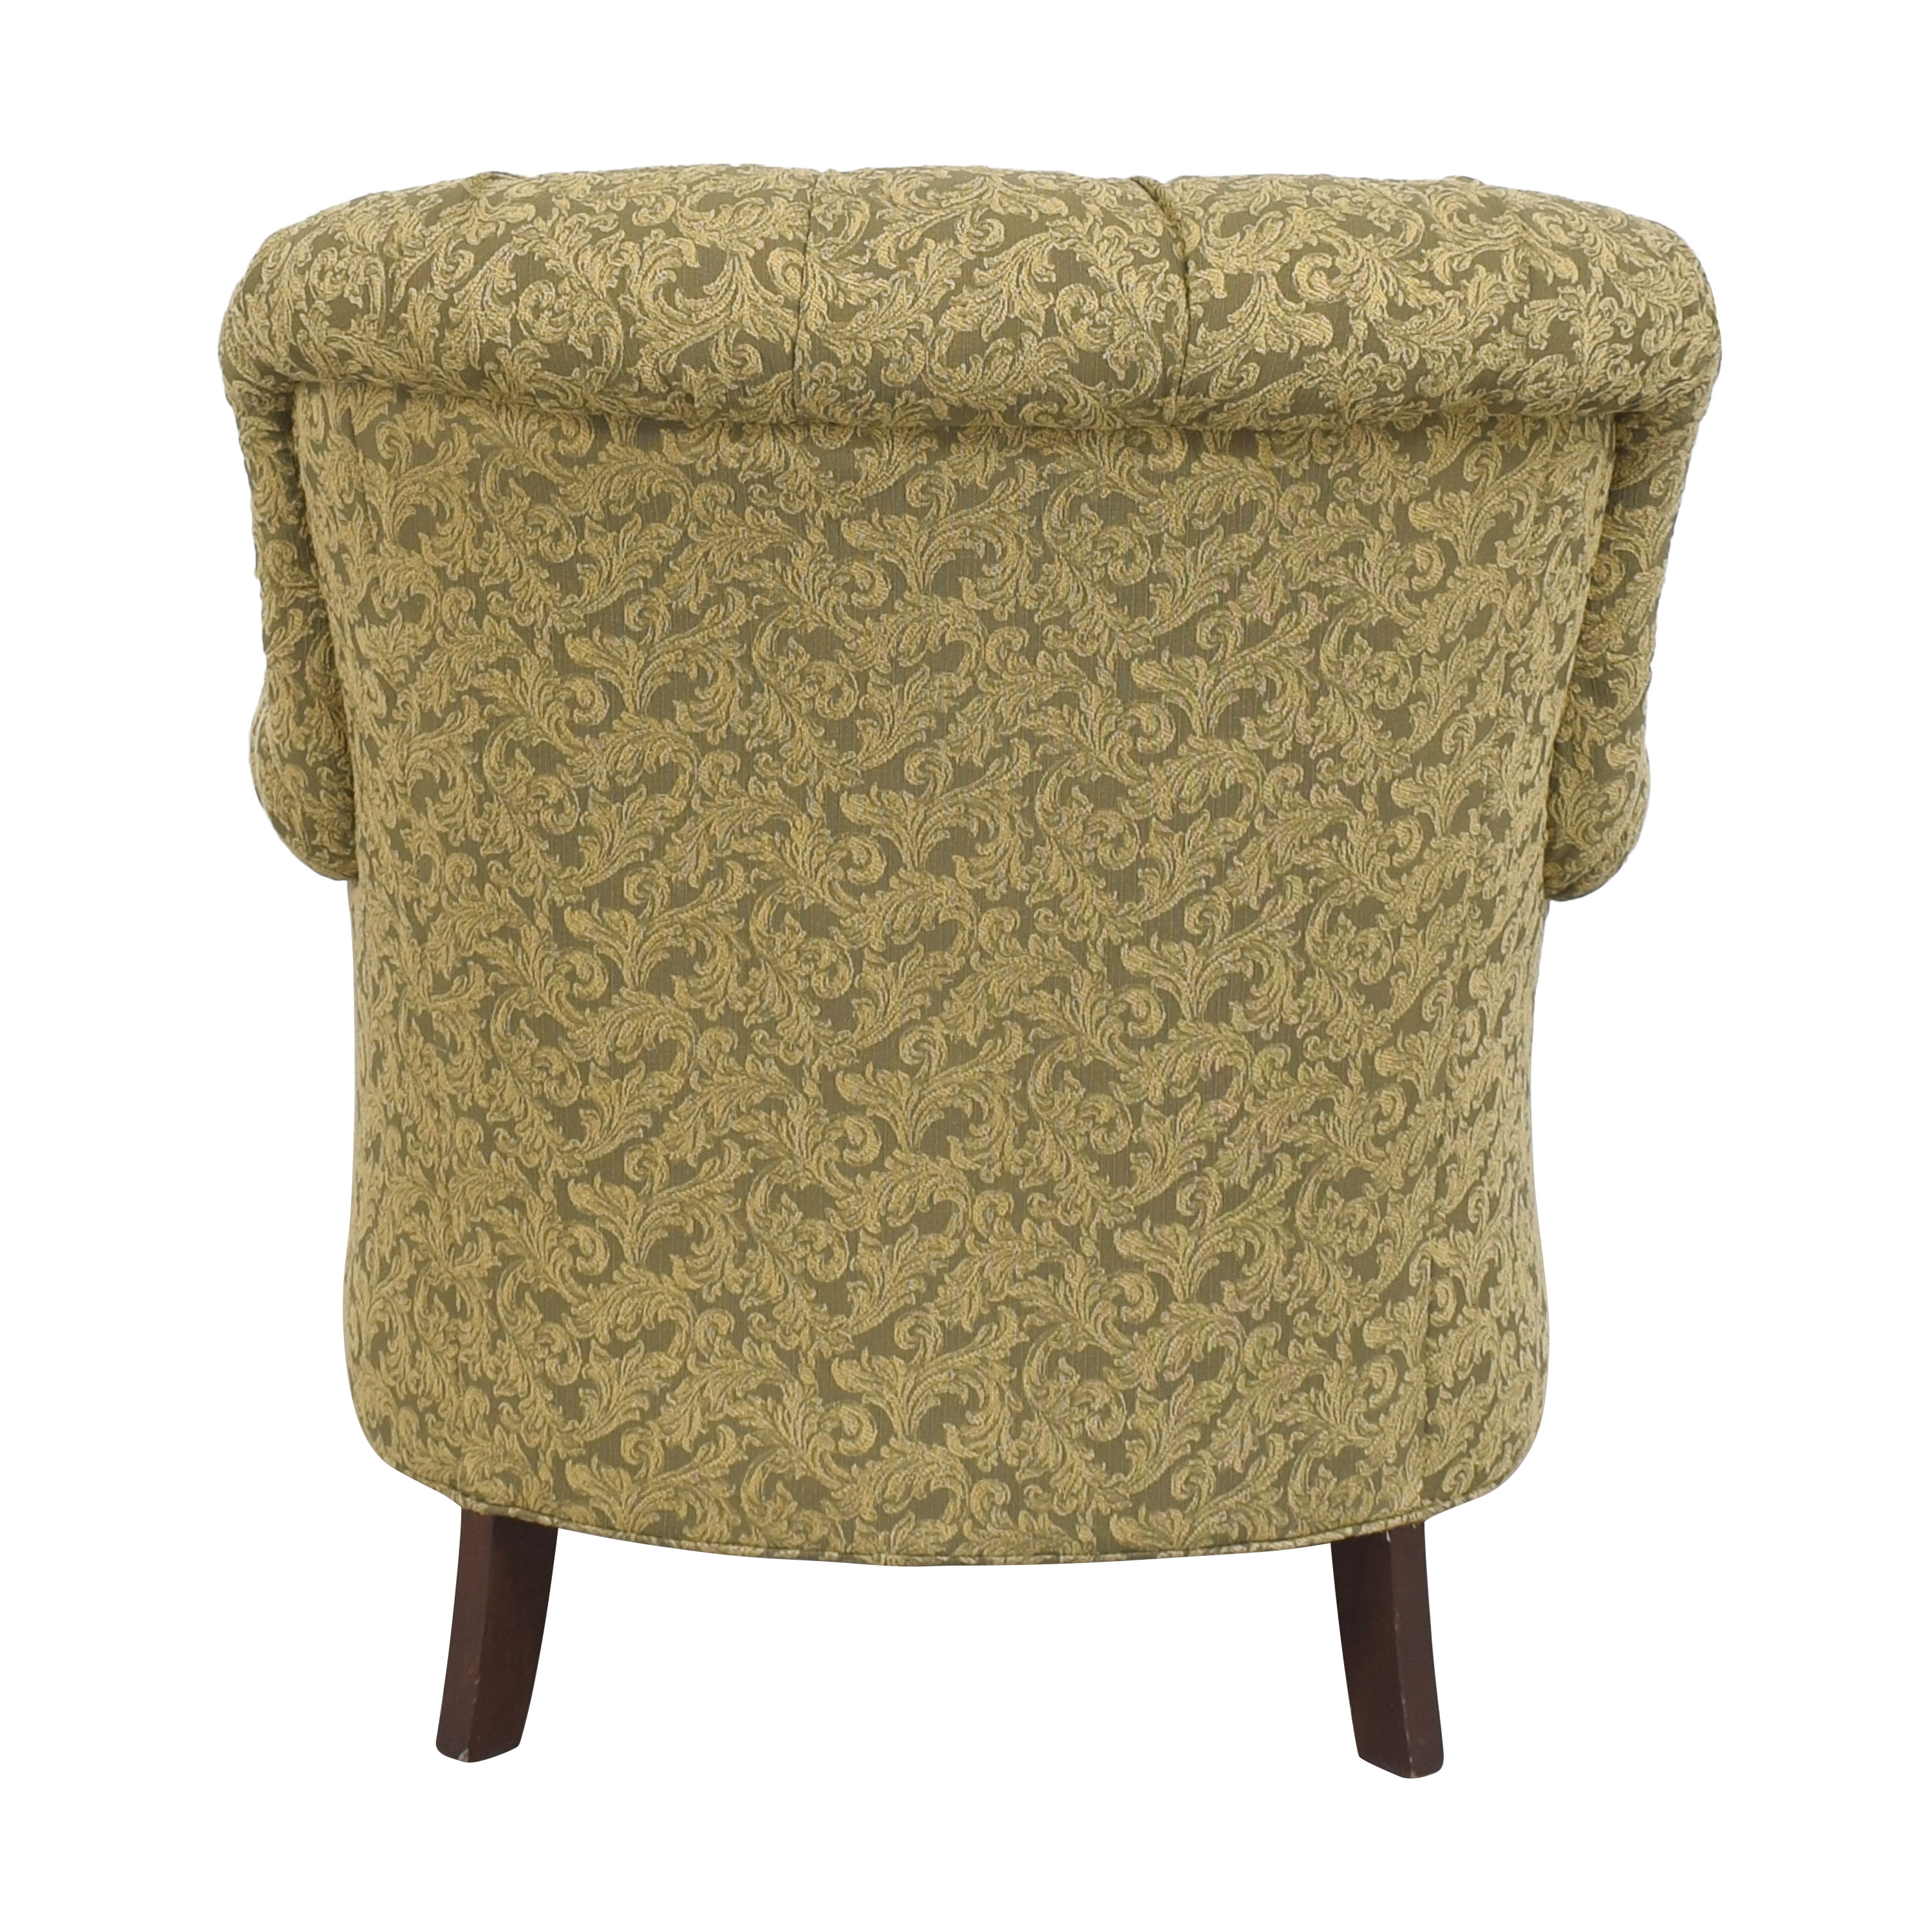 Domain Home Domain Home Tufted Roll Arm Accent Chair used